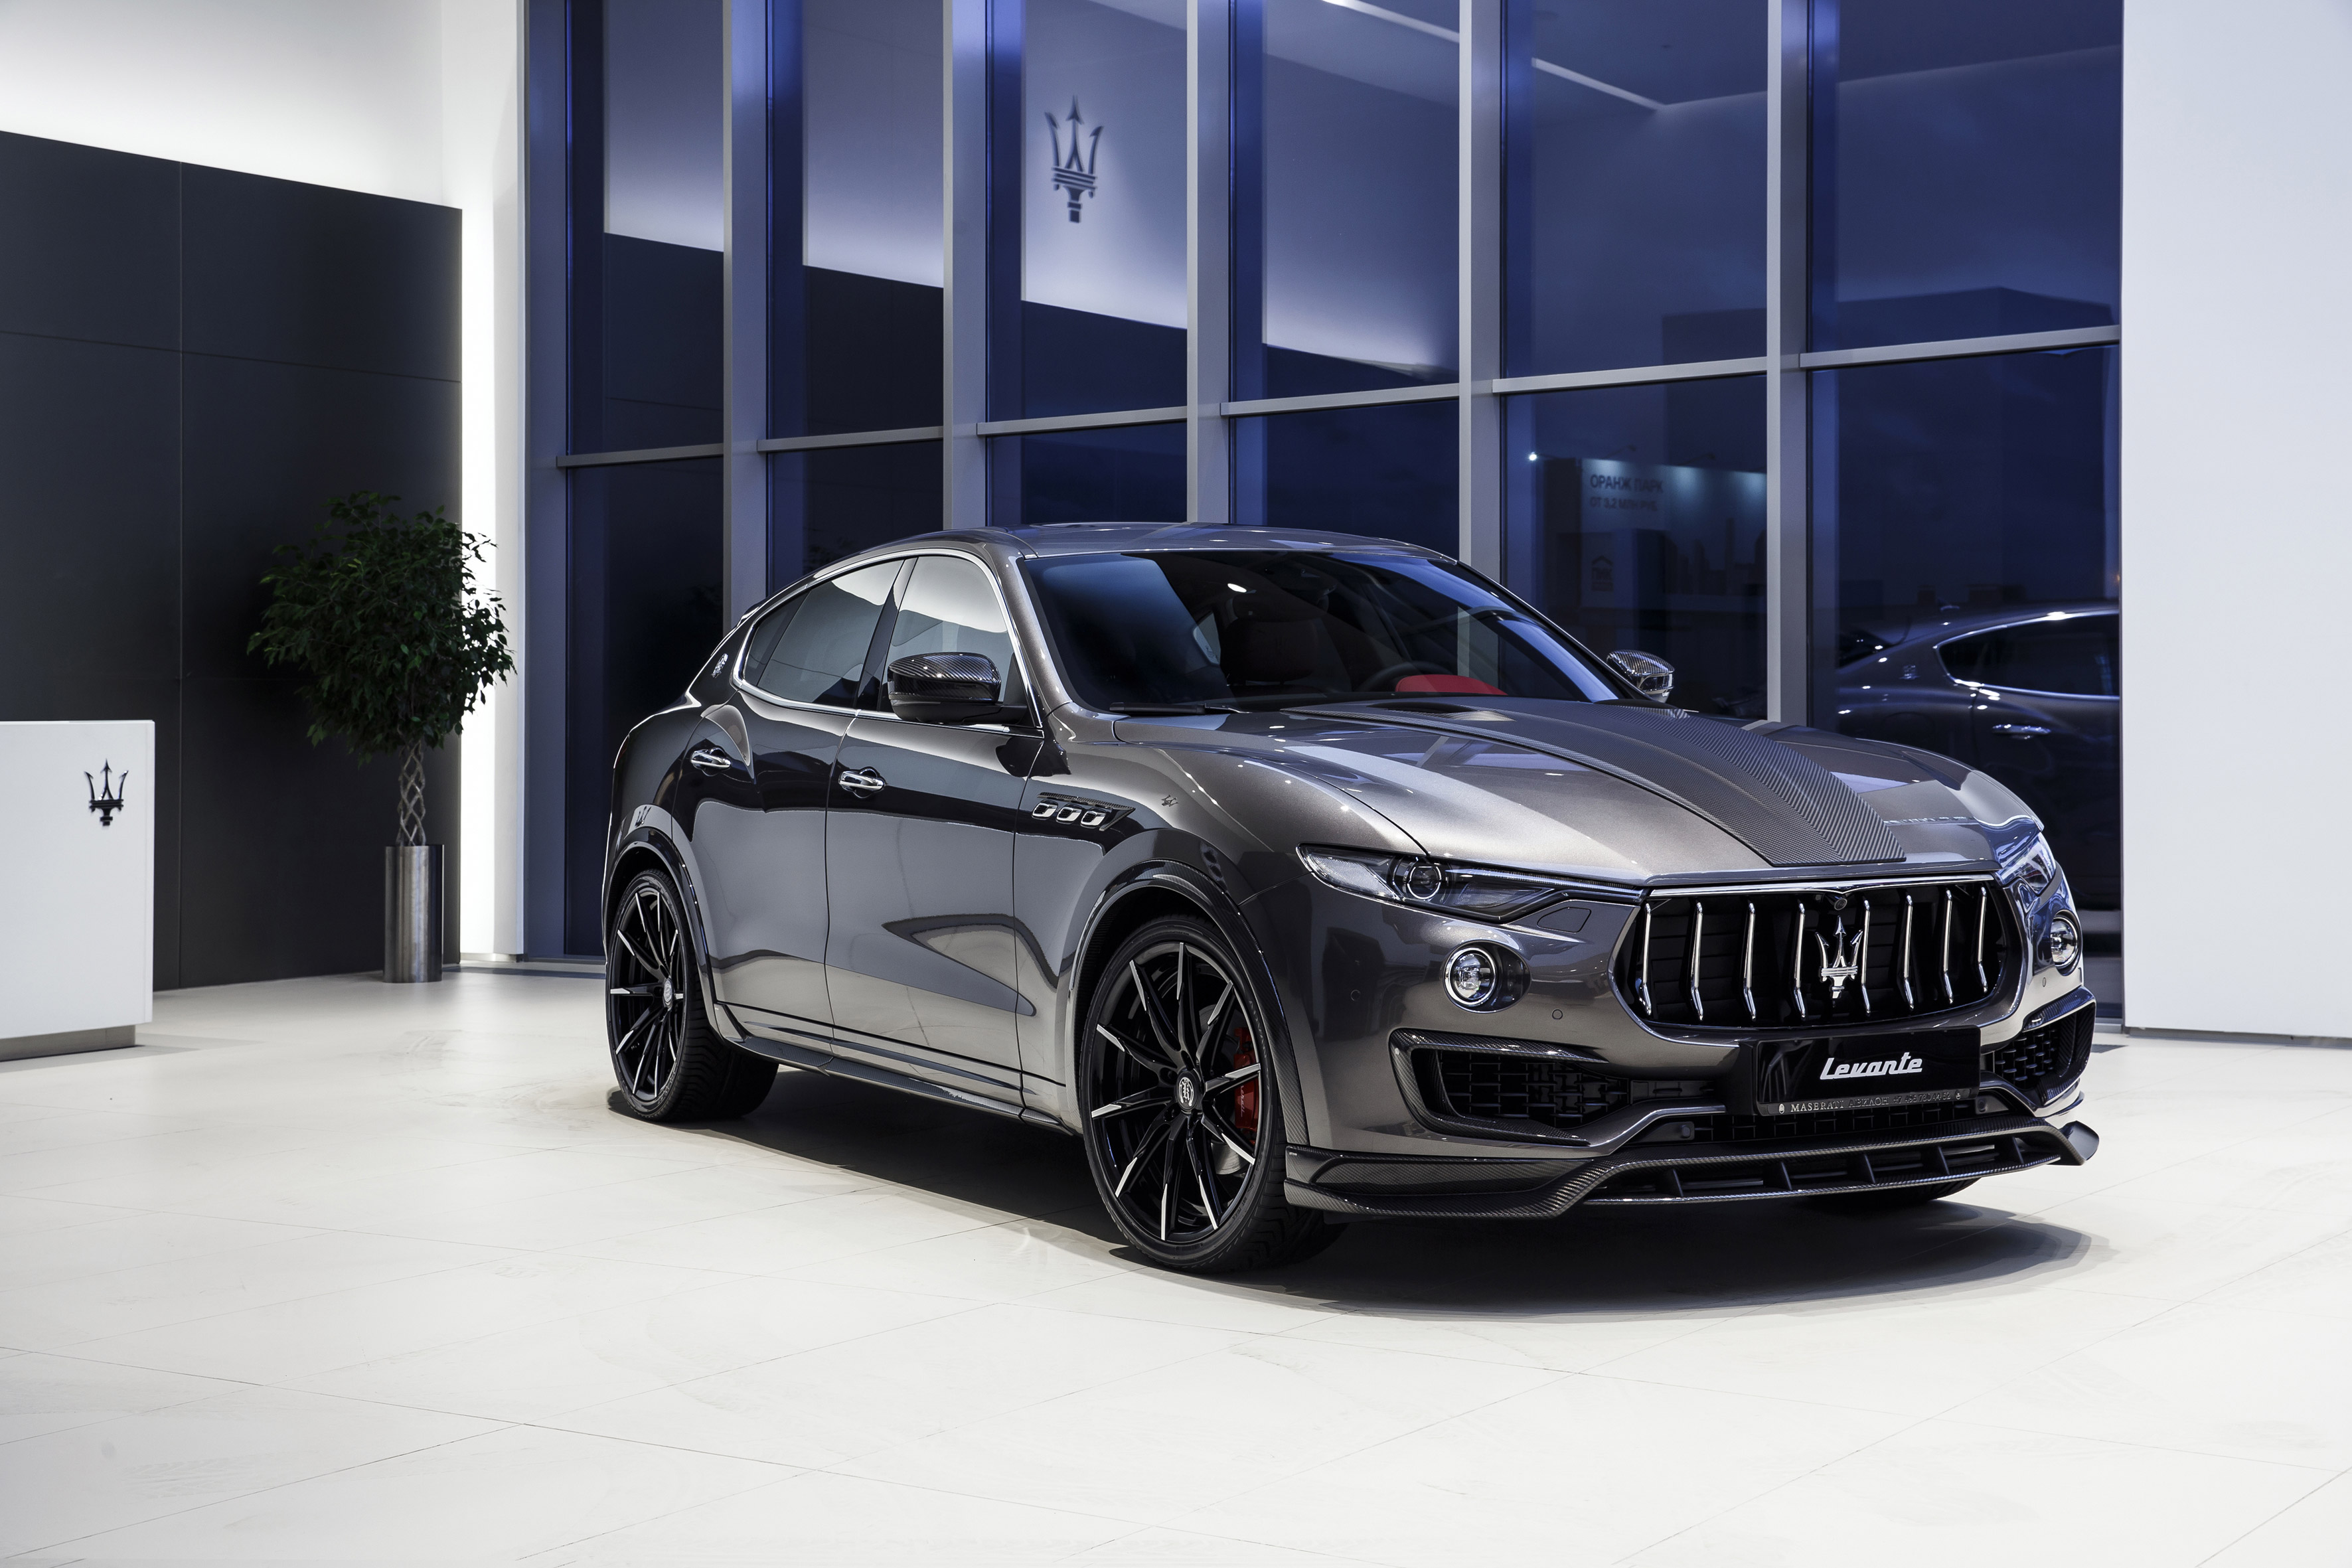 Larte design maserati levante 2017 hd cars 4k wallpapers images backgrounds photos and pictures - Maserati levante wallpaper ...